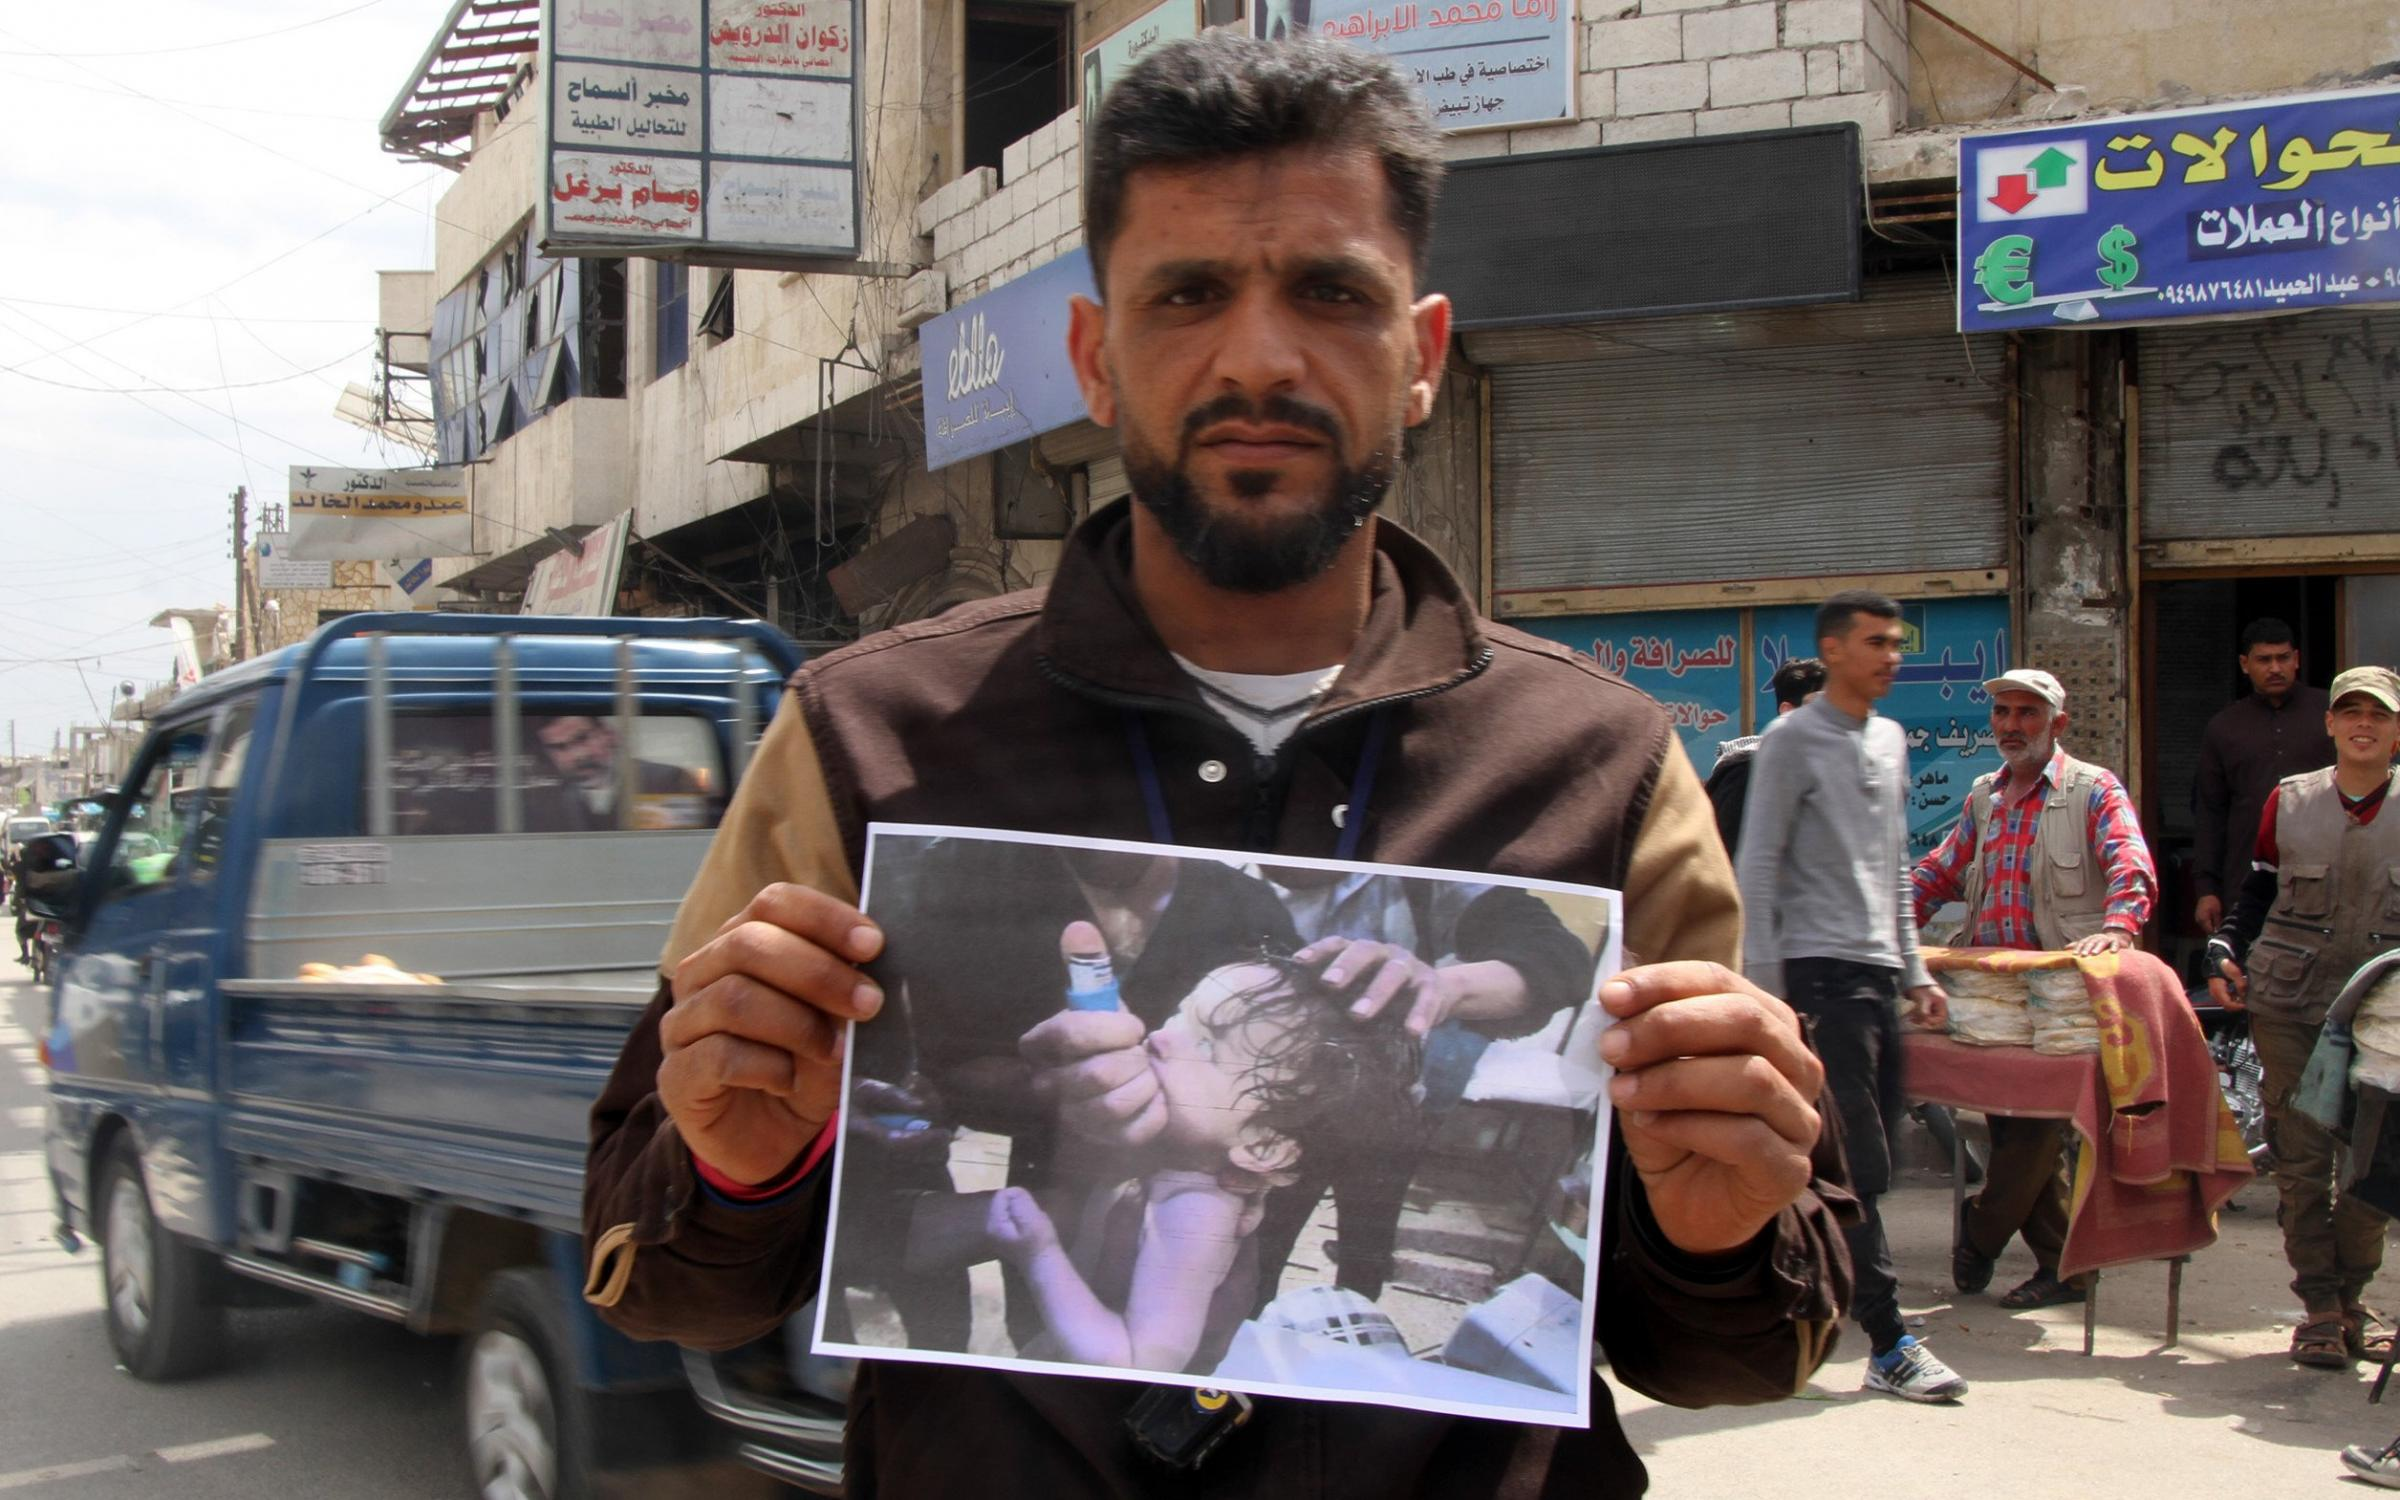 A man holds a photo of a baby as he and other demonstrators gather to protest against Assad regime forces' allegedly conducted poisonous gas attack on the town of Douma